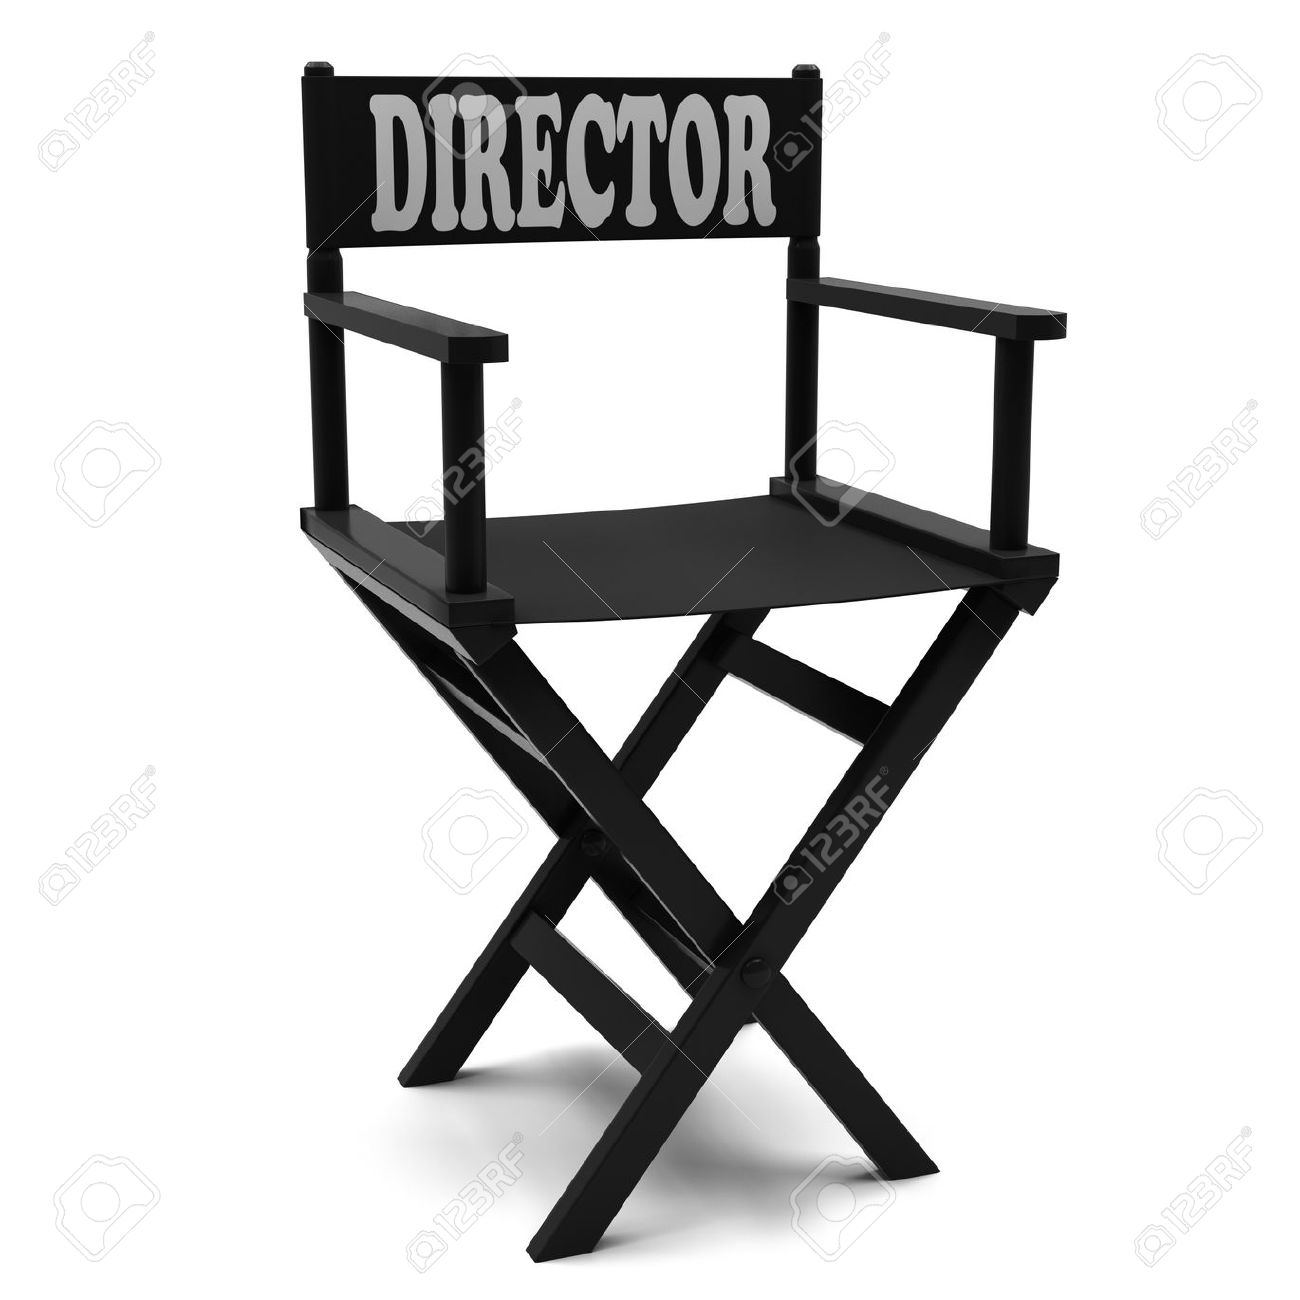 directors chair white diy cushion no sew flim industry on a background stock photo 13127062